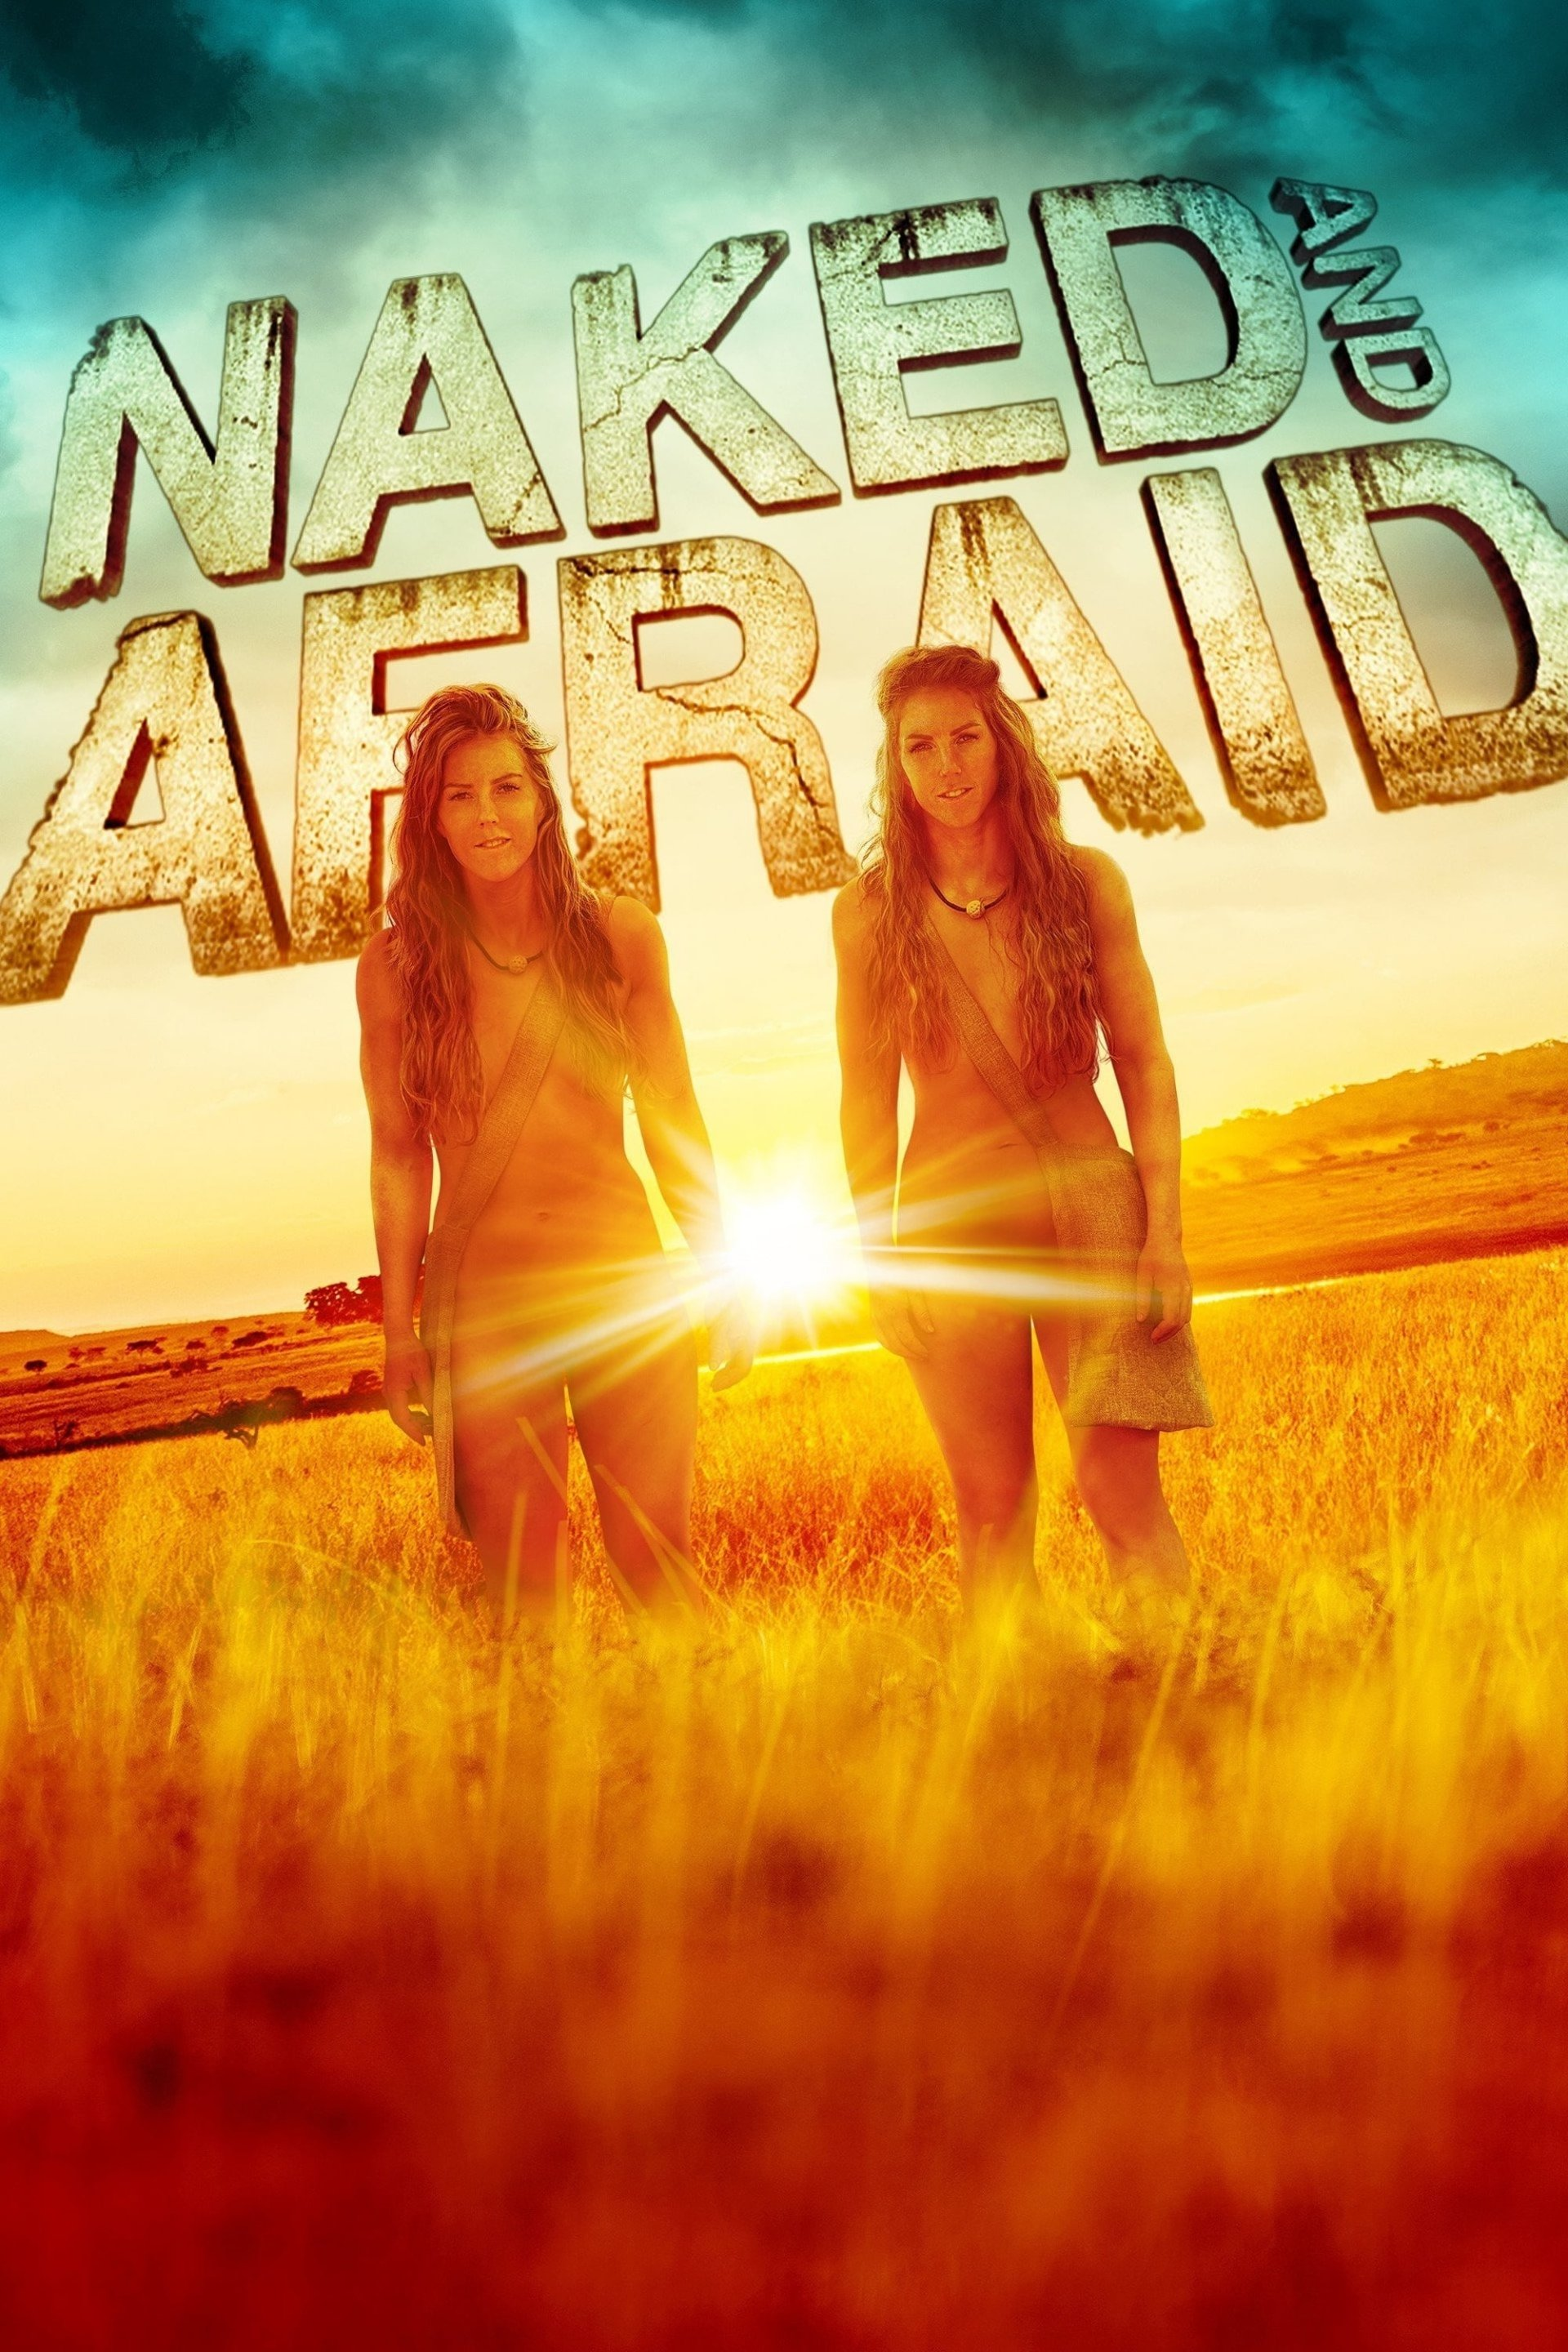 Naked and Afraid Season 11 Episode 4 Release Date, Watch